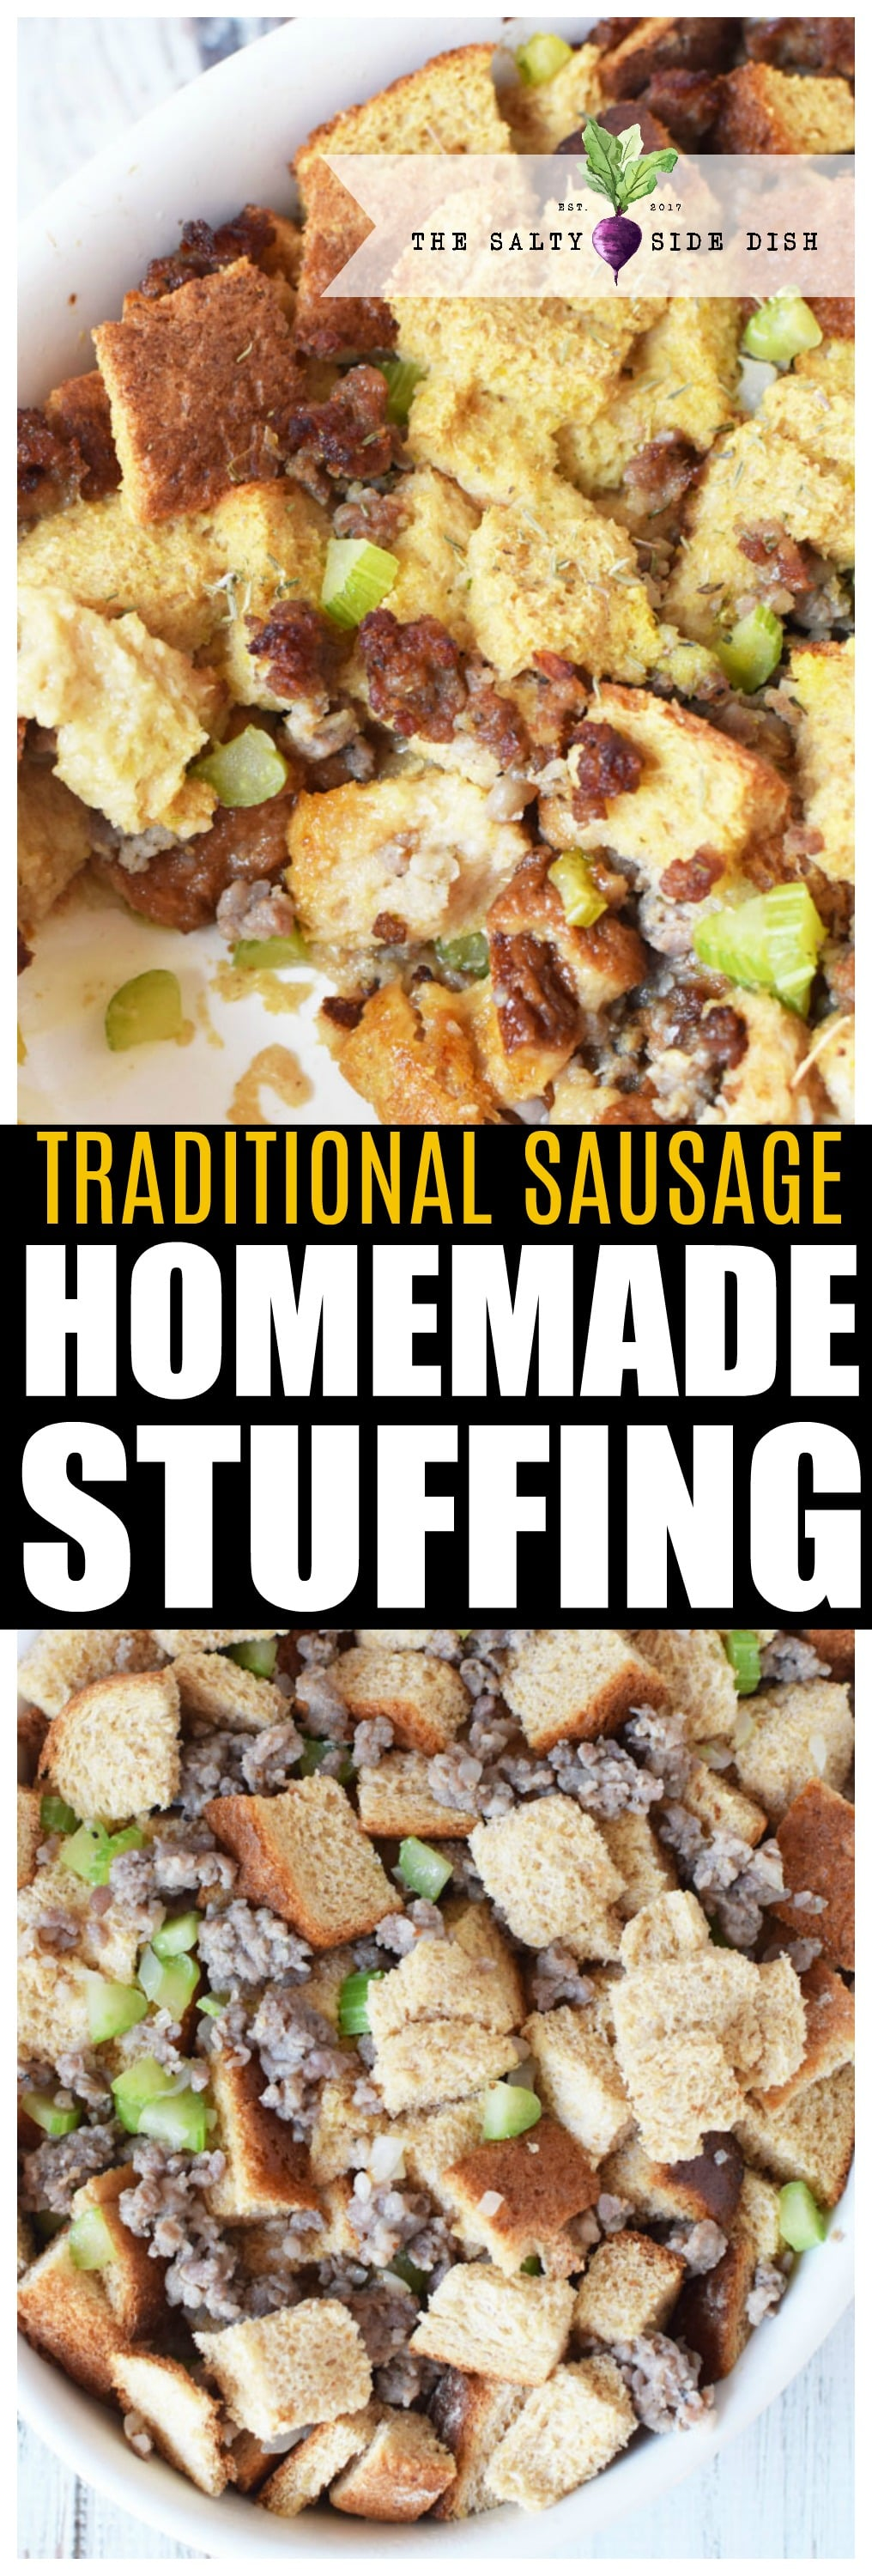 Homemade Stuffing | Easy from scratch Sausage Stuffing Recipe | Thanksgiving Side Dish #stuffing #holidays #thanksgiving #sausage #homemade #recipe